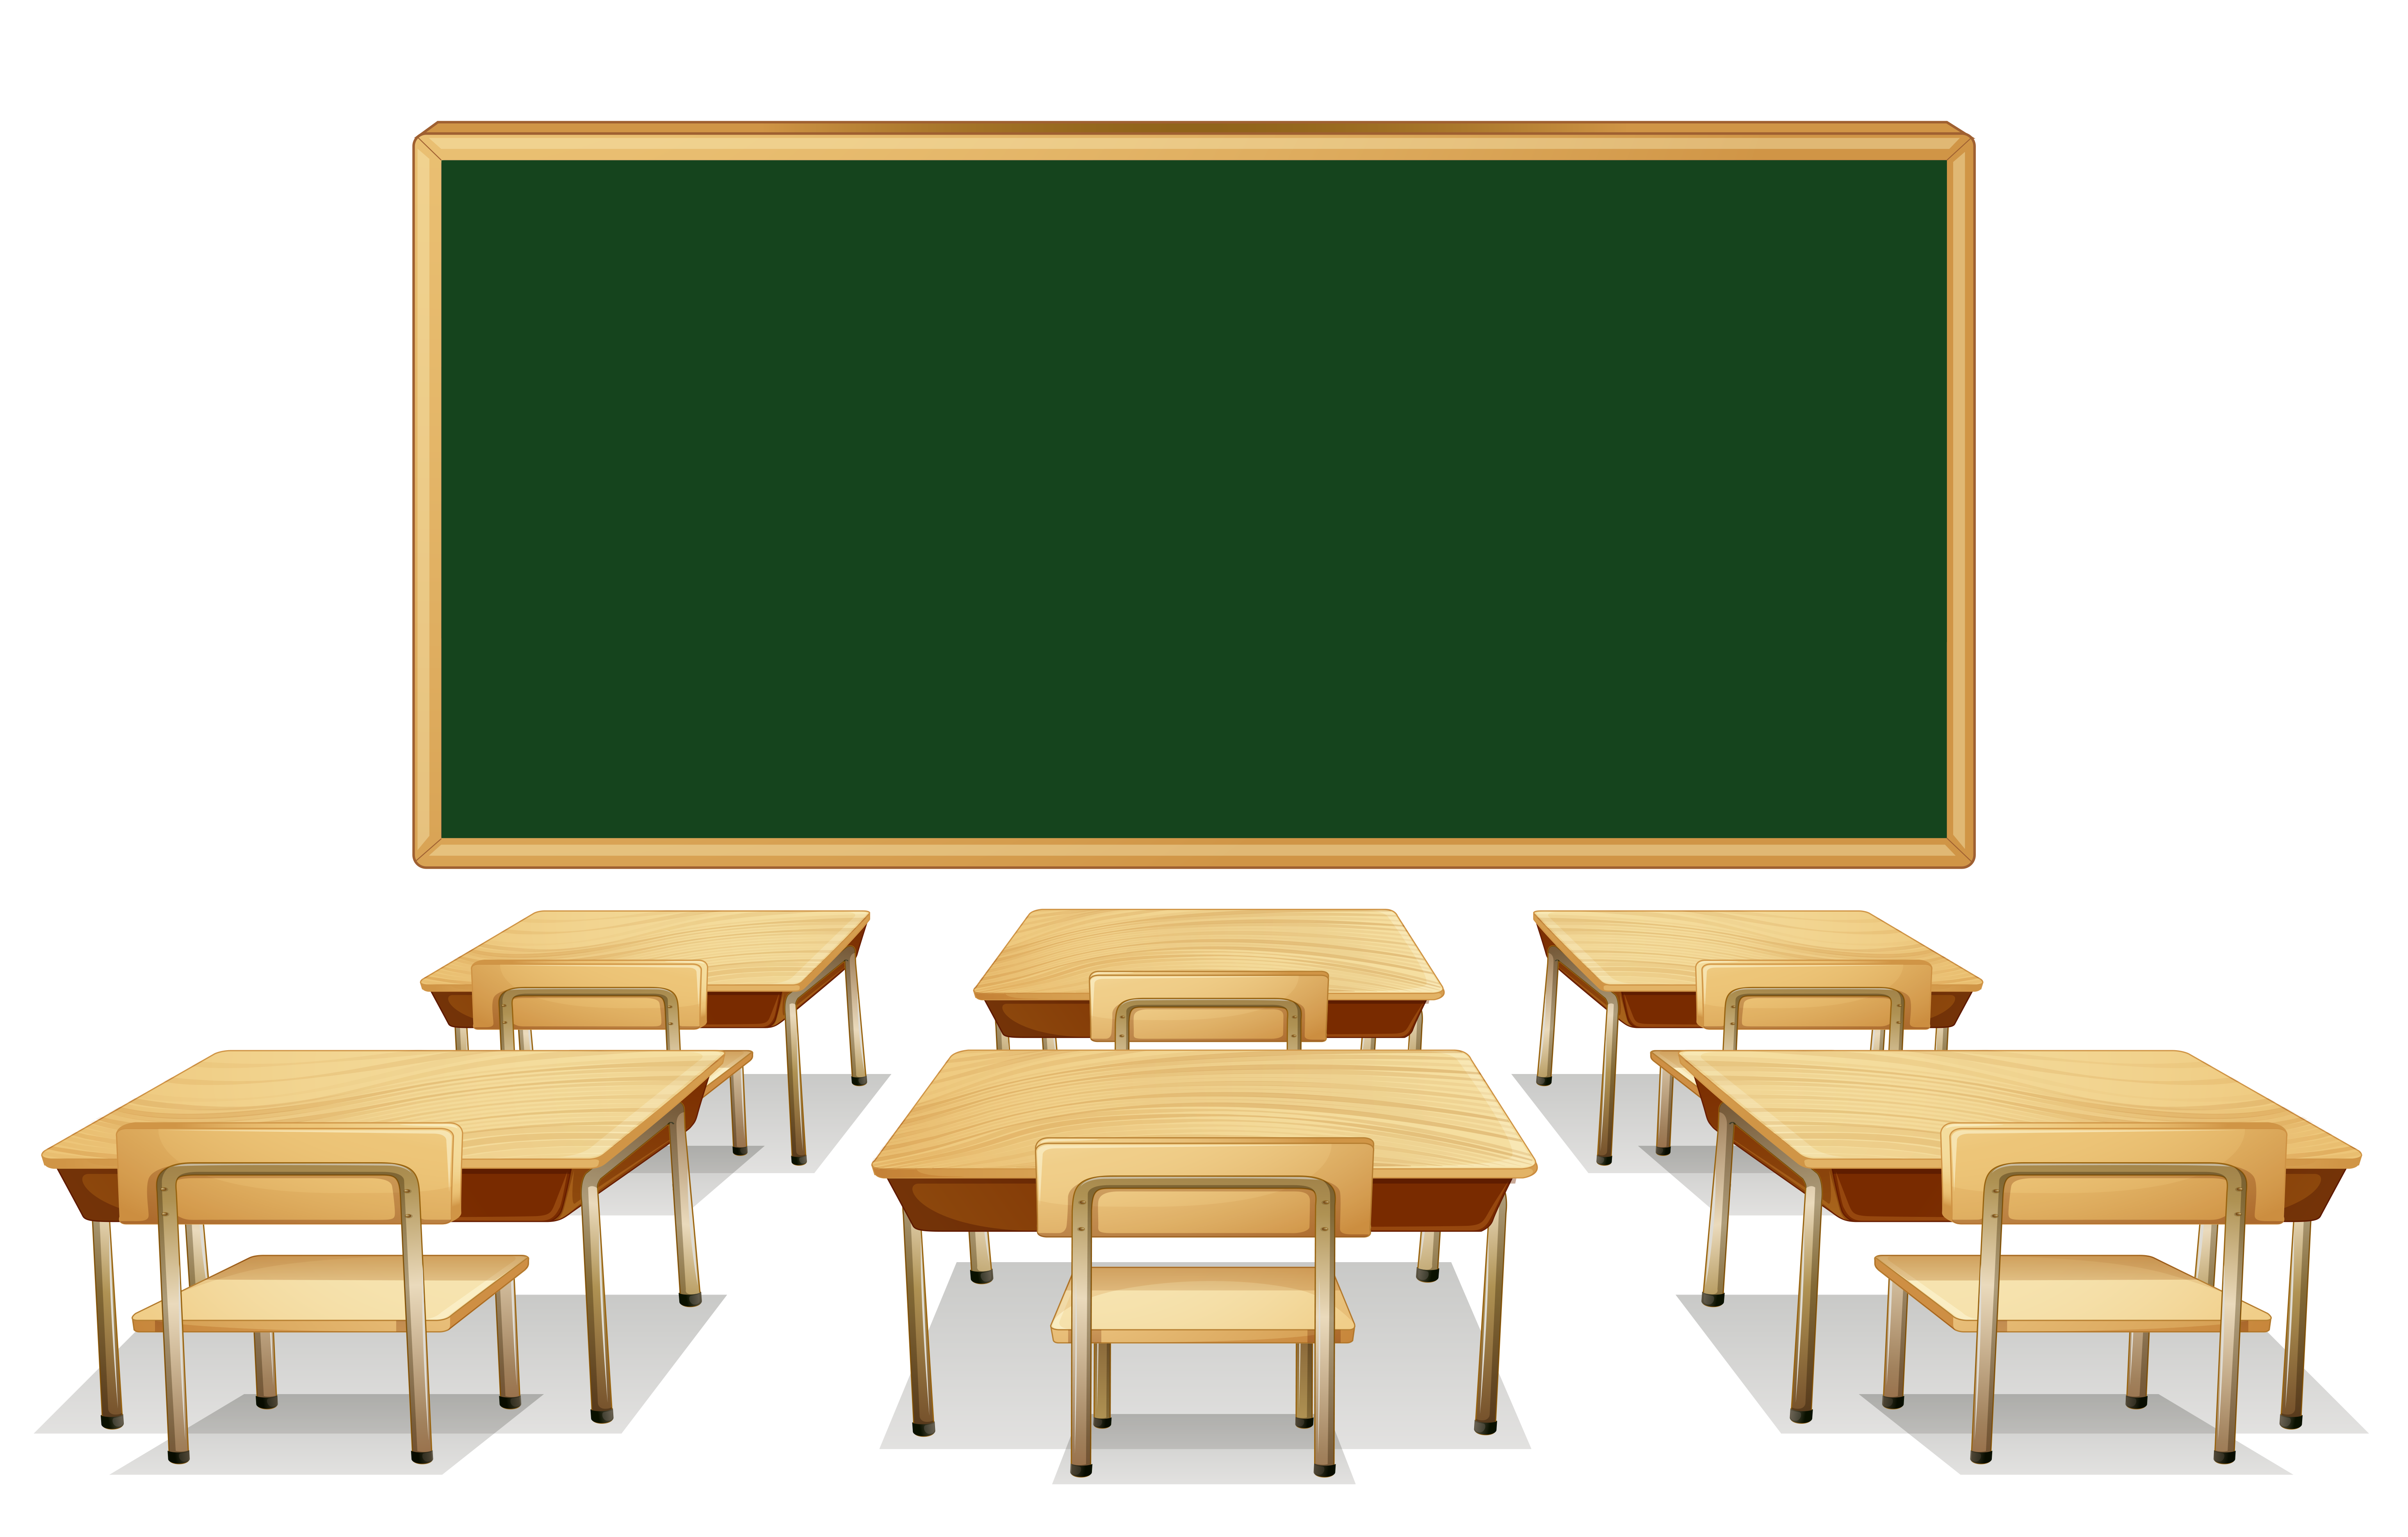 free classroom clipart - Classroomclipart